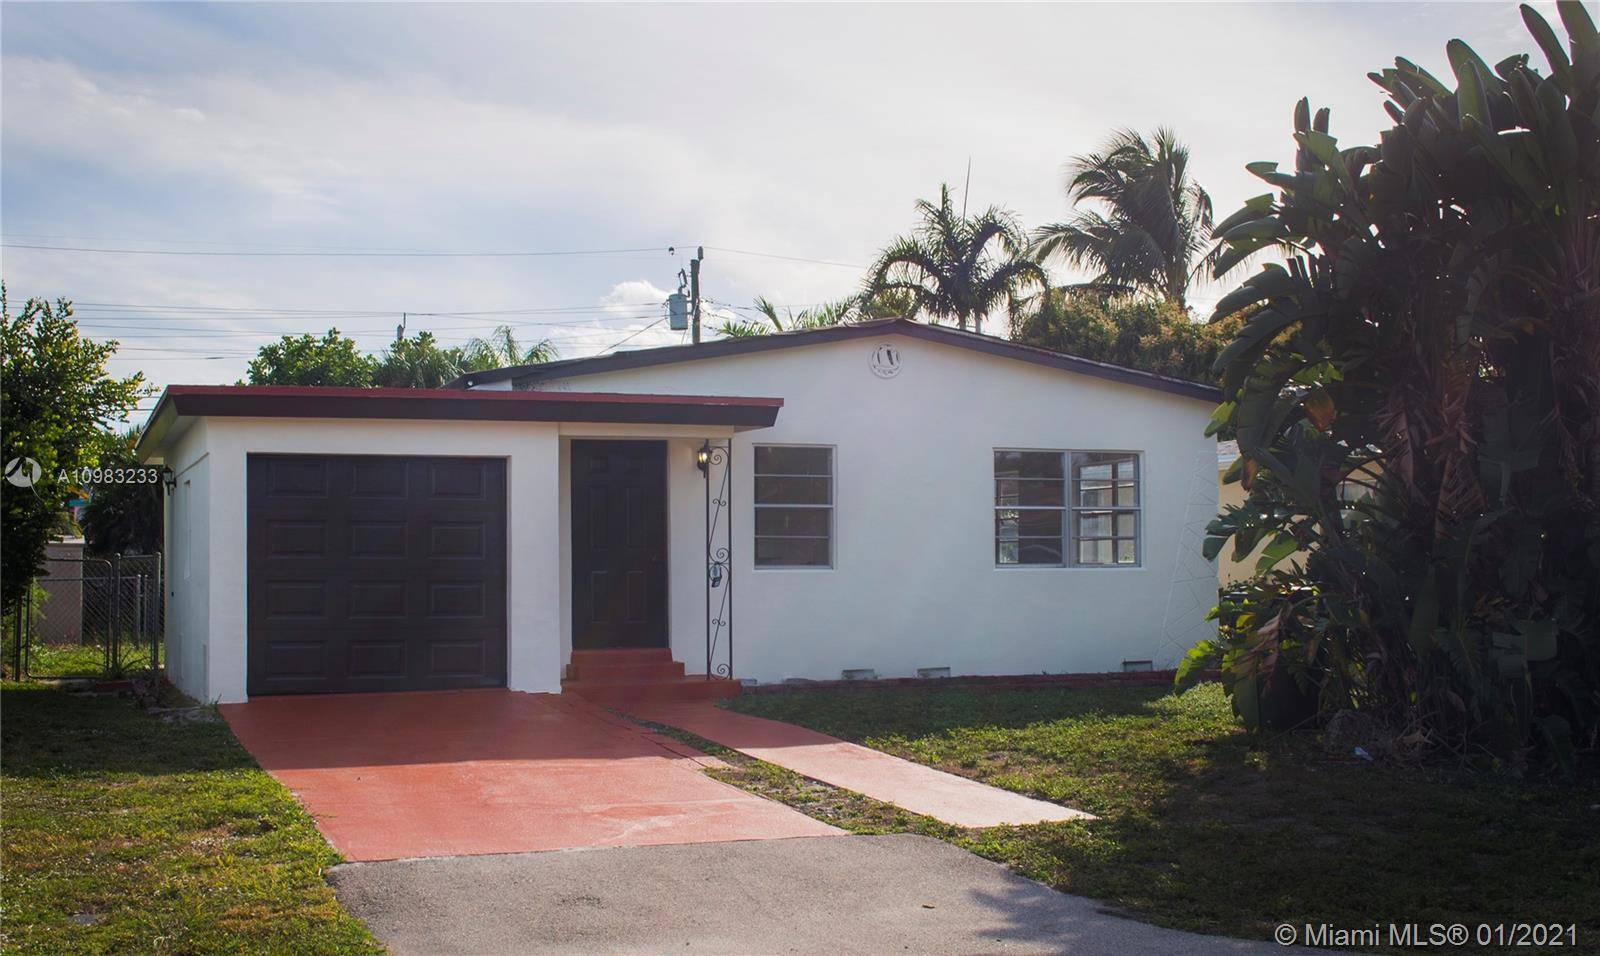 As per seller this beautiful remodeled home has a New roof, New kitchen with wooden cabinets and quartz countertops,  New bathroom, and newly refinished wooden floors and much more. This house is move in ready. sold as is, inspections are welcome.